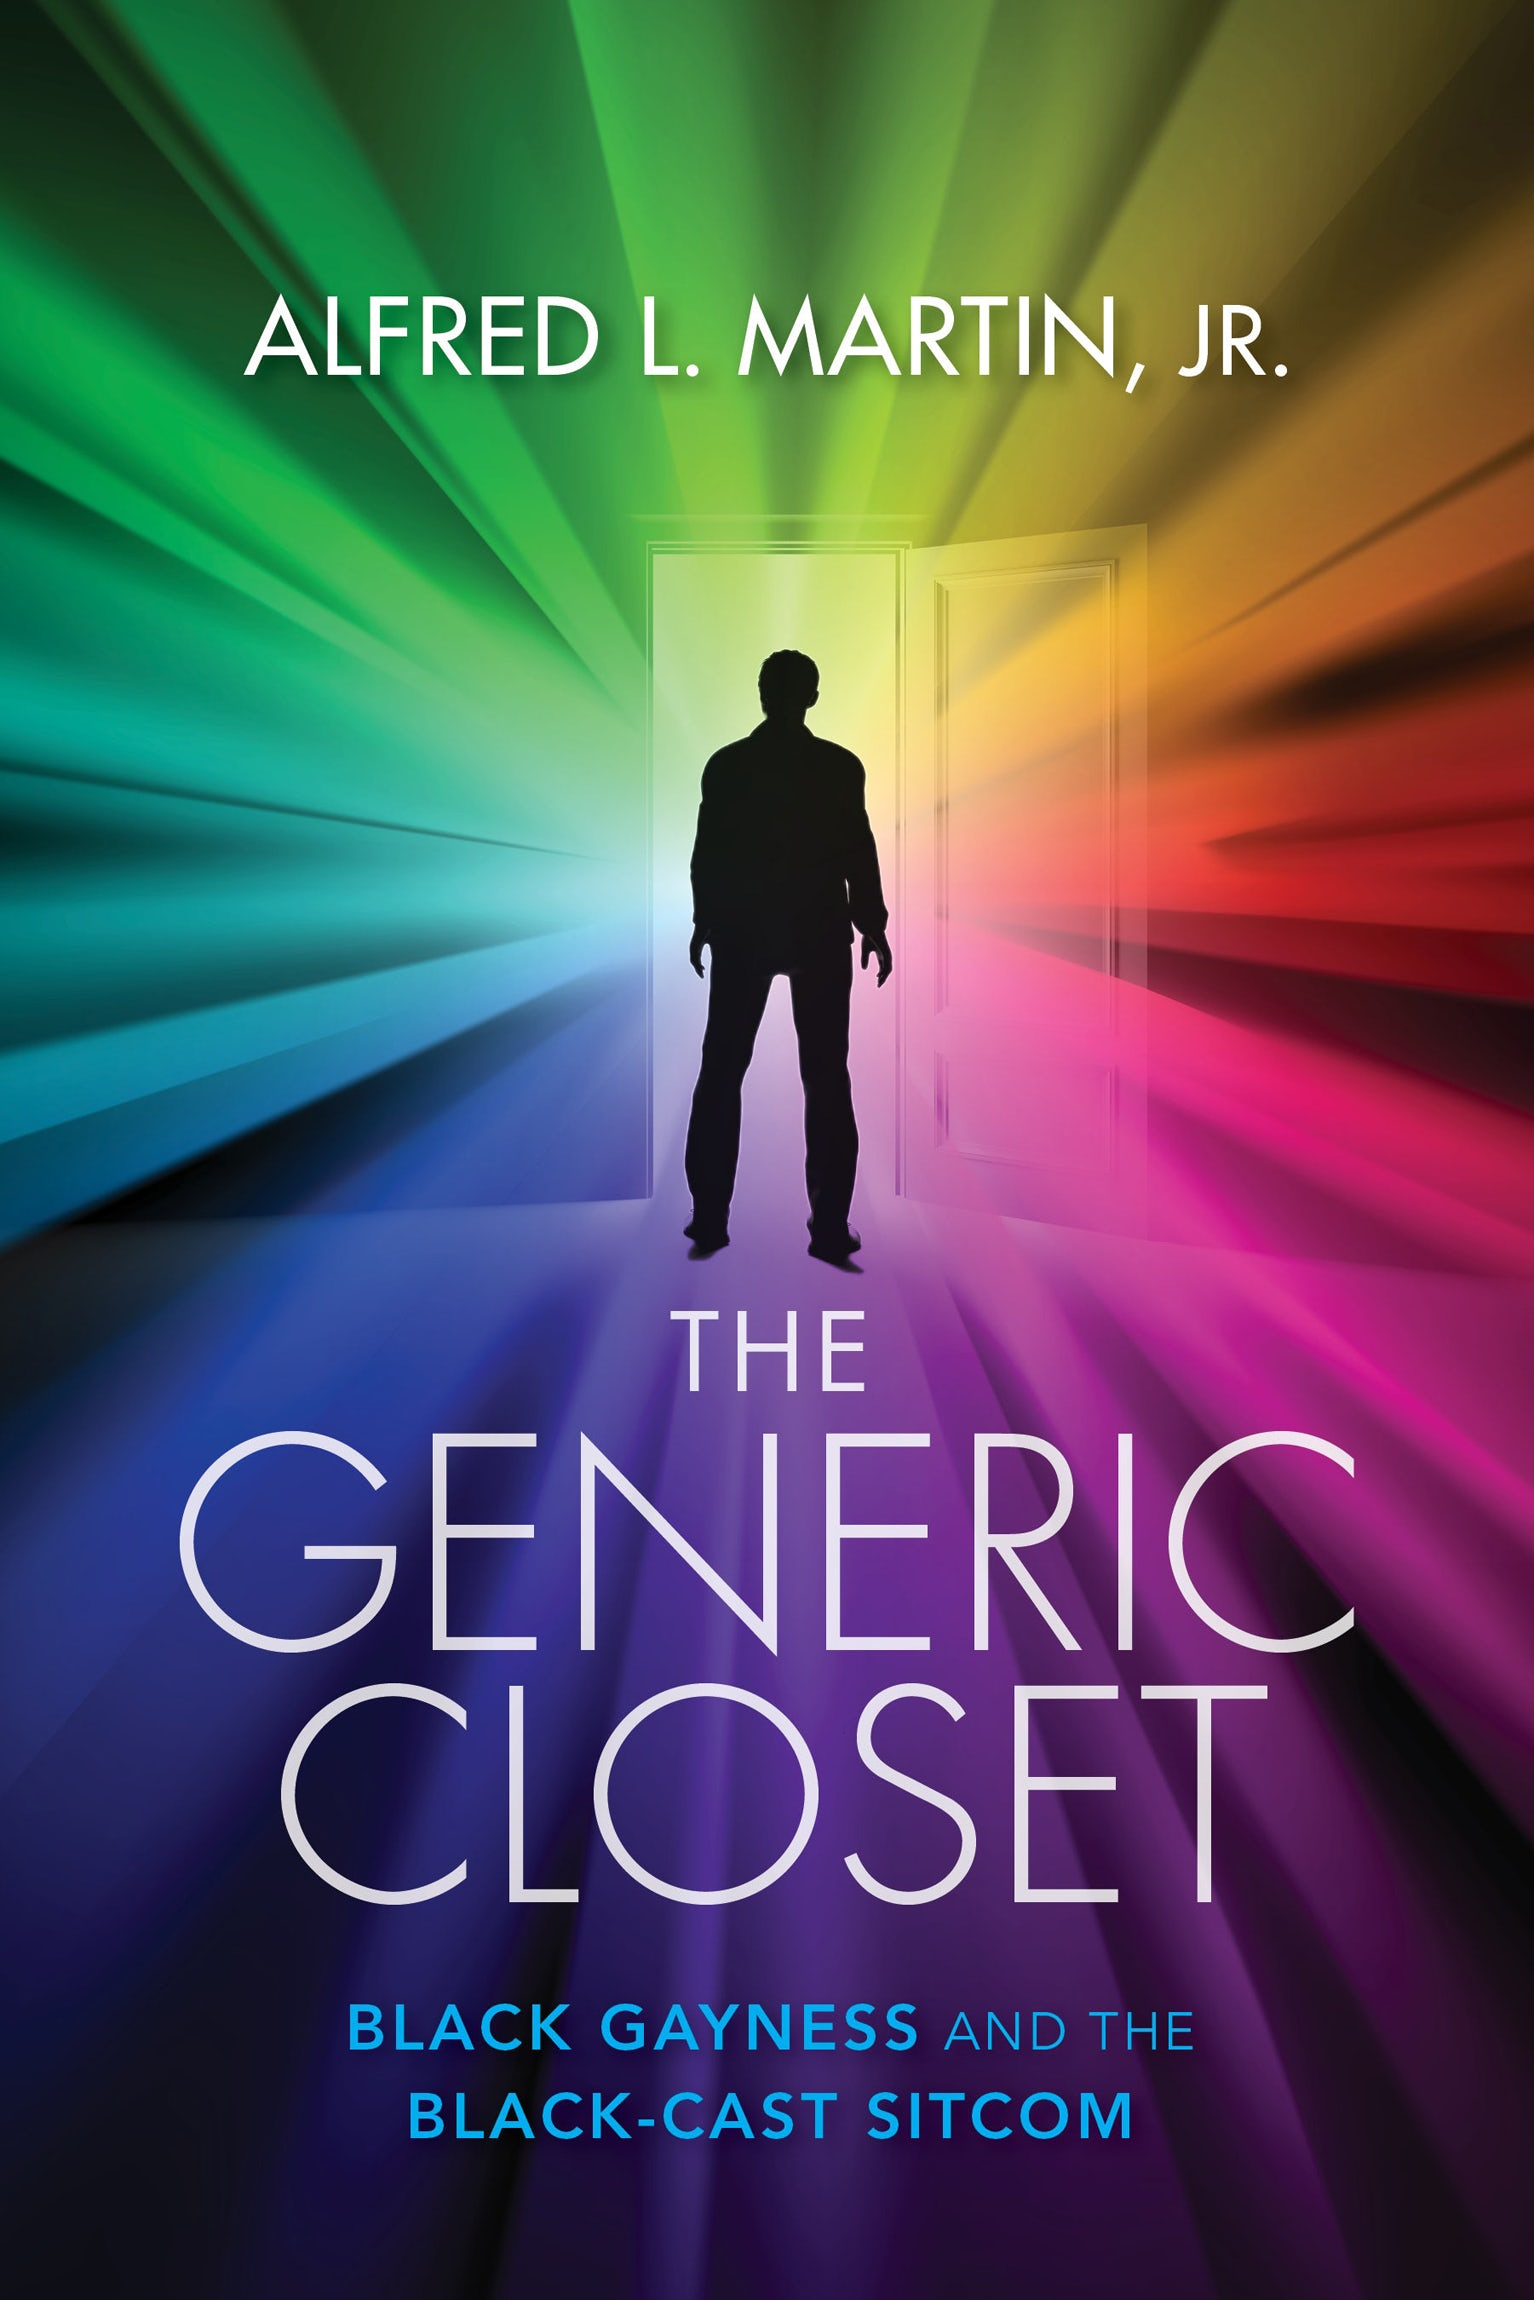 The Generic Closet Black Gayness and the Black-Cast Sitcom by Alfred L. Martin Jr.